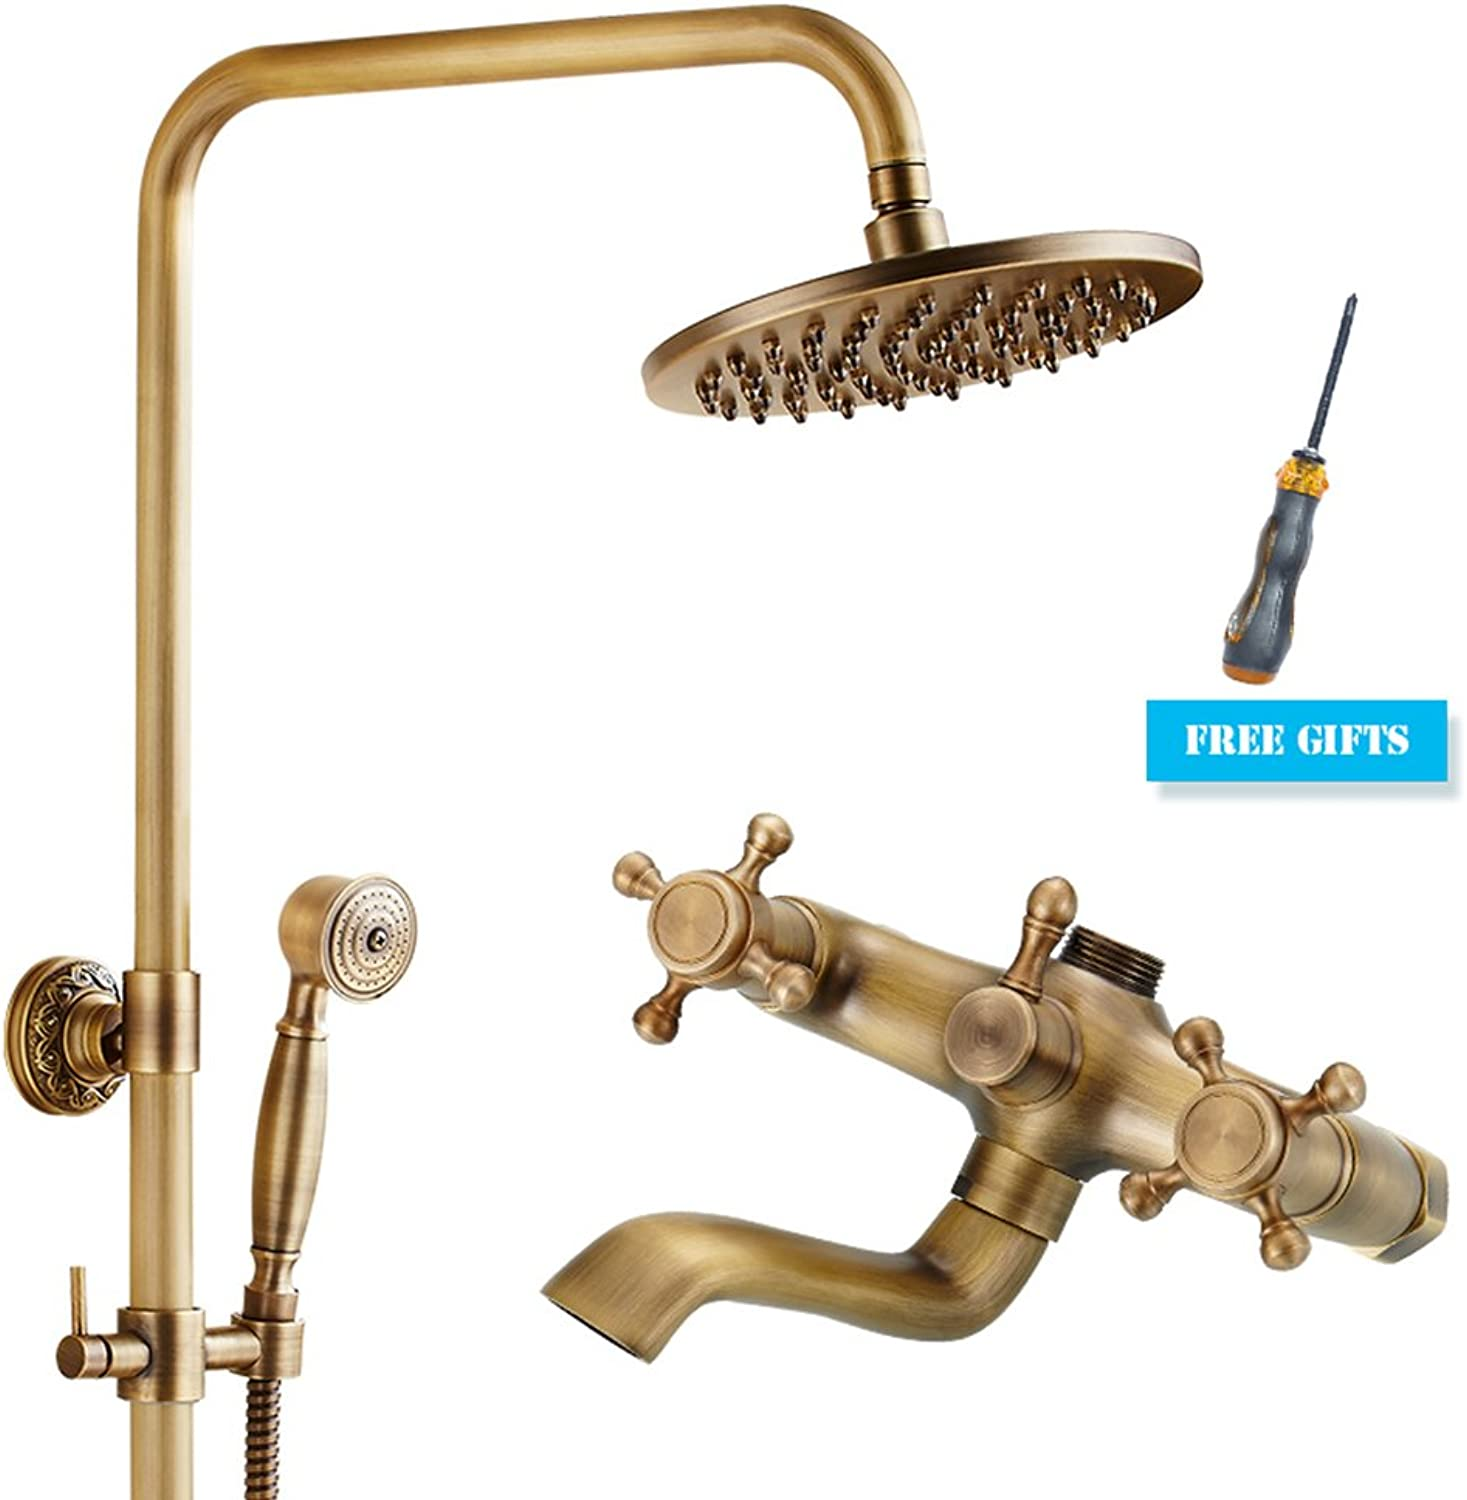 GAOLI Copper Antique Bathroom Shower Faucet, European-Style Retro Shower Shower Hot And Cold Faucet, Bathroom Handheld Nozzle Set, In-Wall Shower Faucet